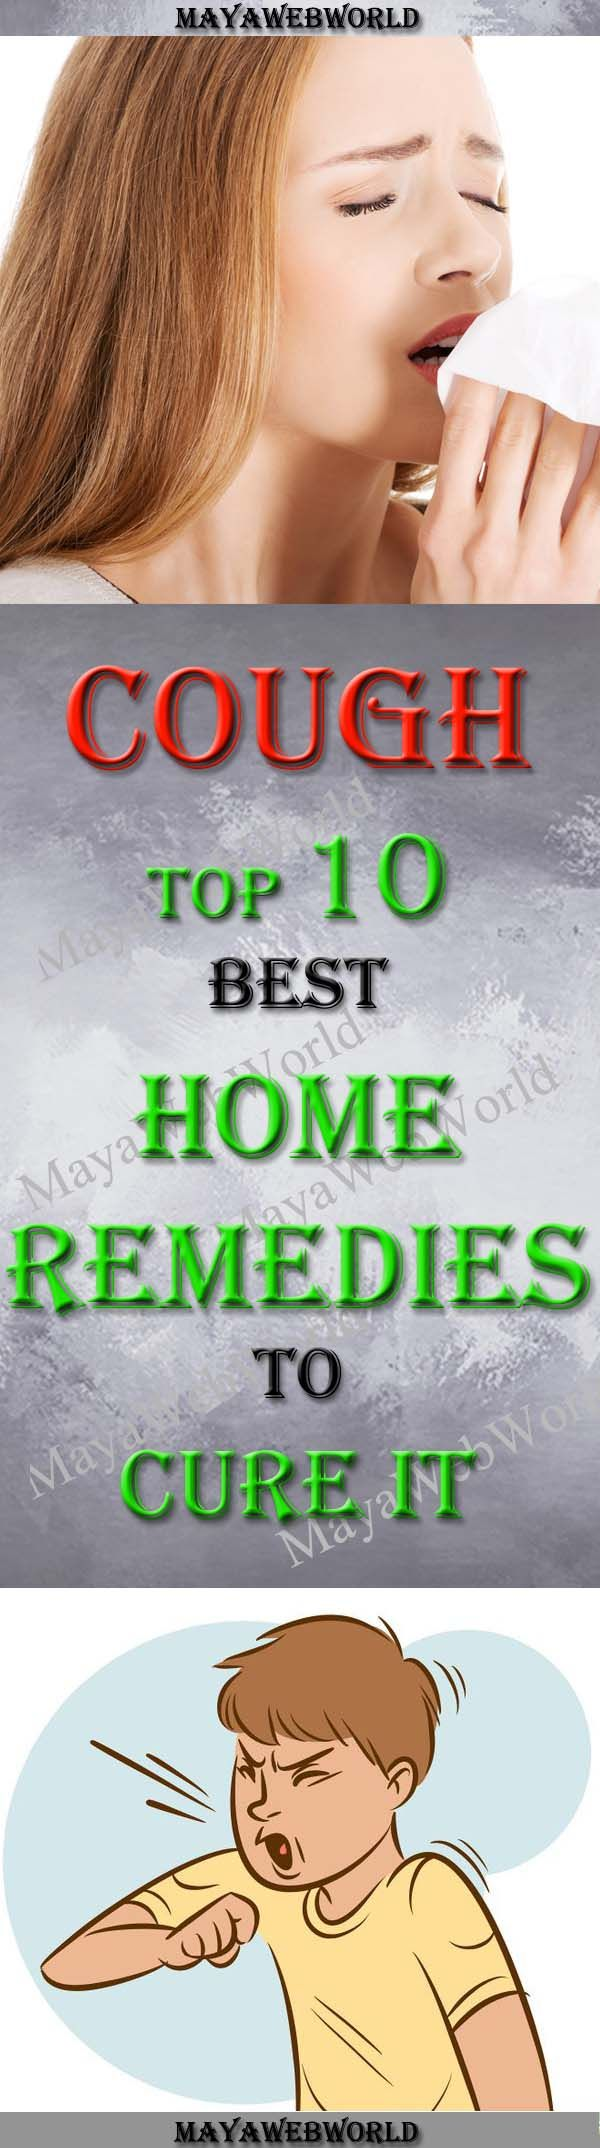 Cough: Top 10 Best Home Remedies to Cure it – MayaWebWorld